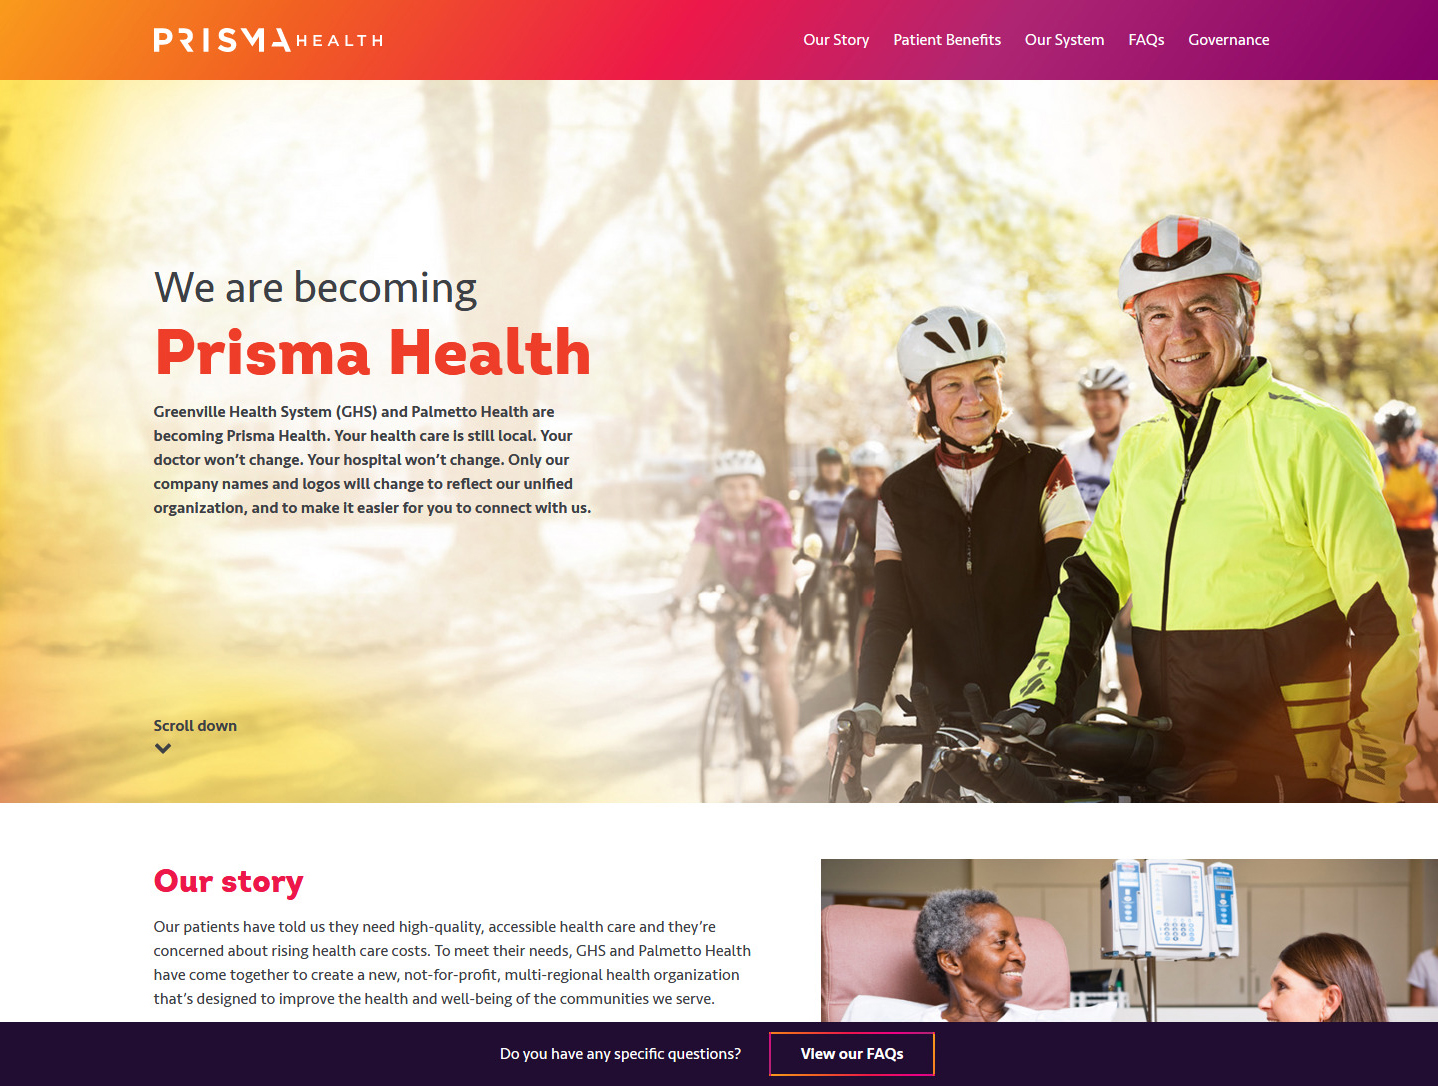 We are becoming Prisma Health desktop view